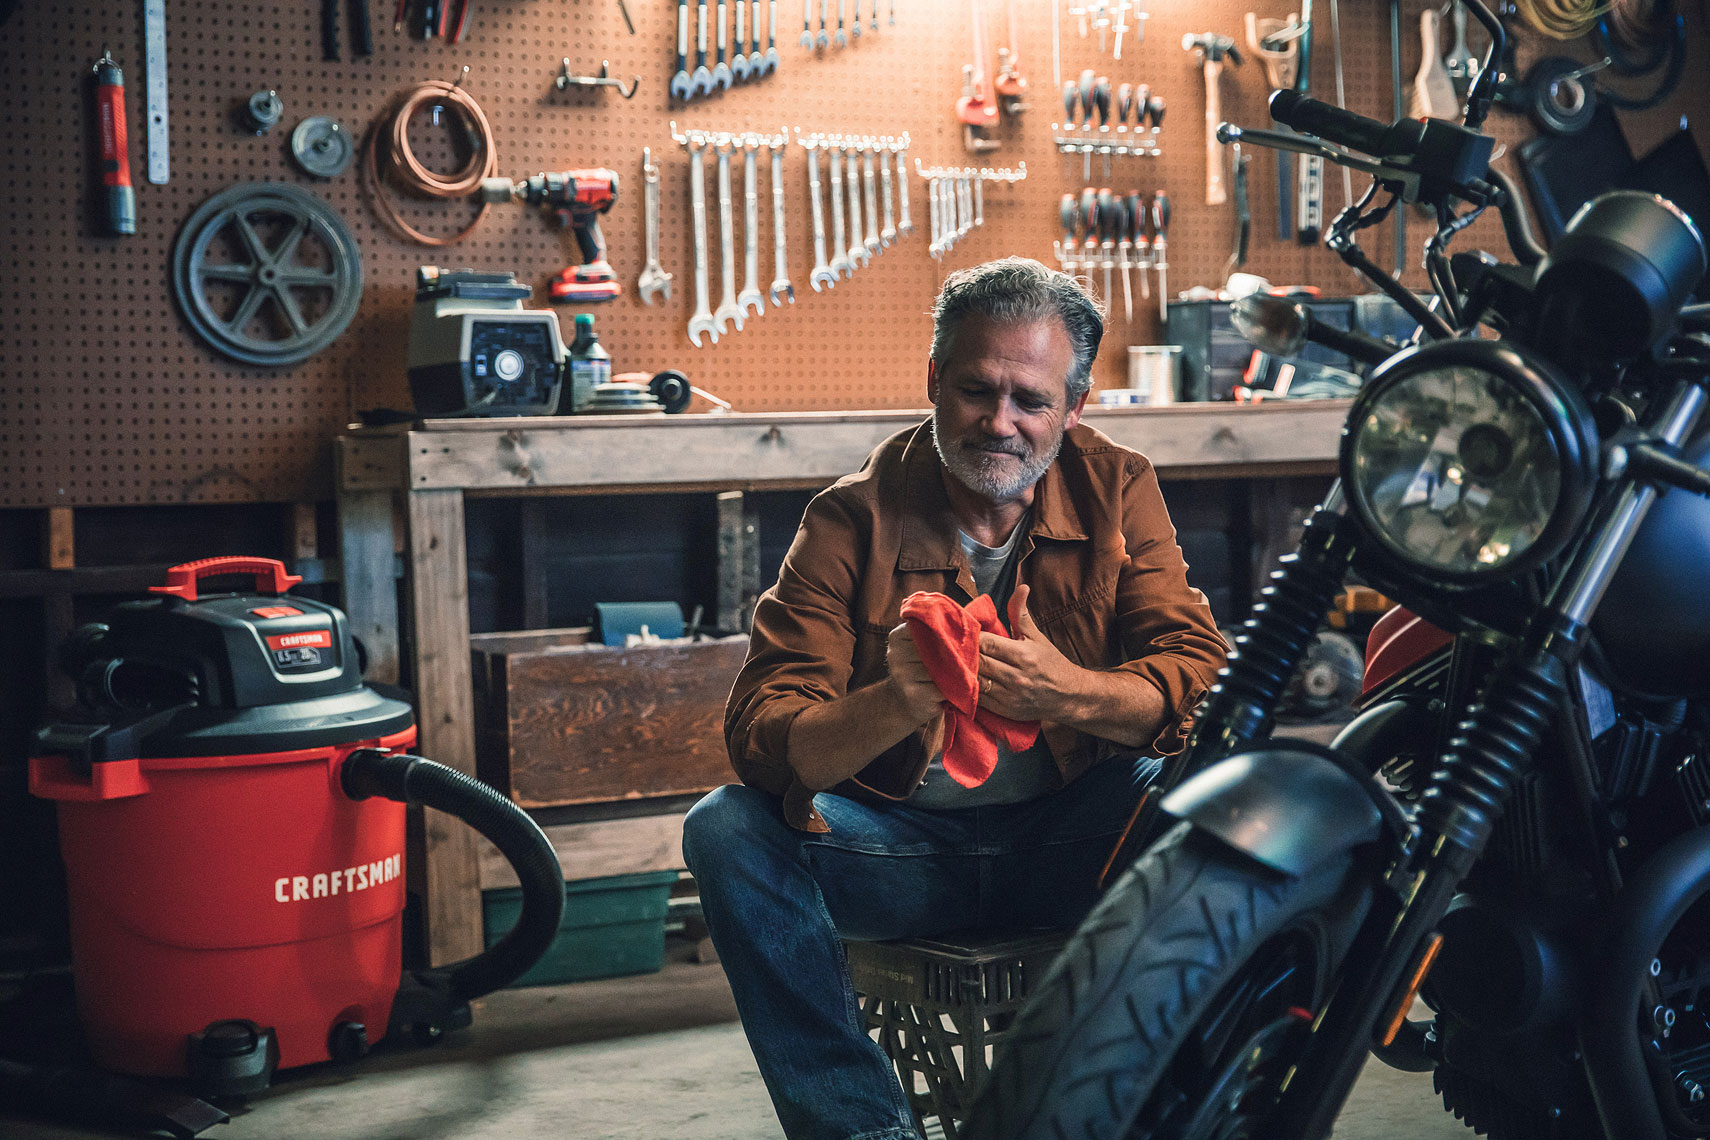 Craftsman Tools 20Gallon Wet/Dry Vacuum | Man working on his motorcycle with Craftsman vac in the background. | John Fedele Product Photography